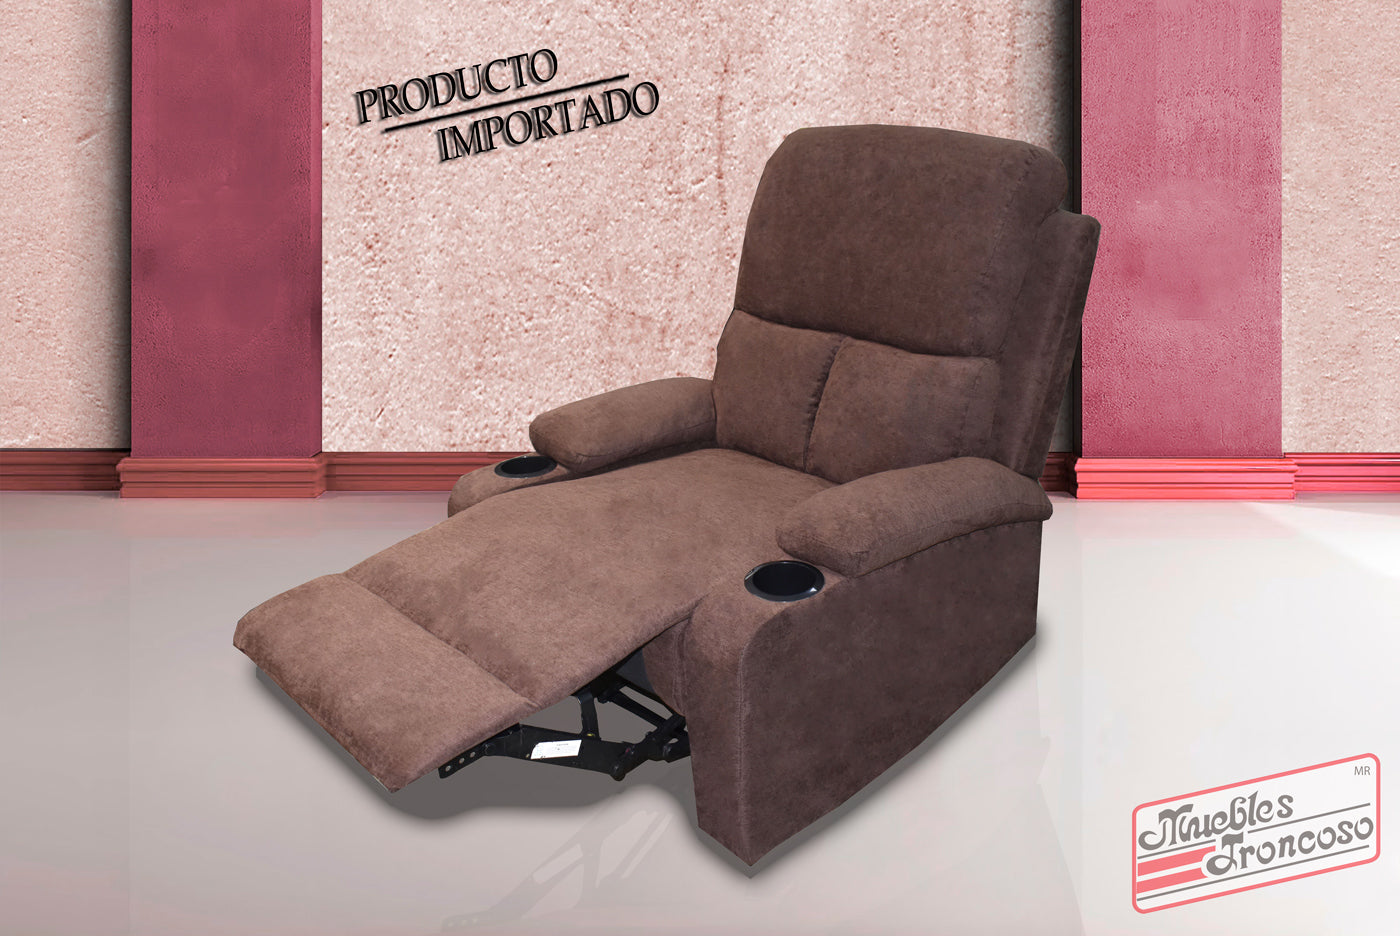 SILLON RECLINER 59547 CHOCOLATE - Muebles Troncoso